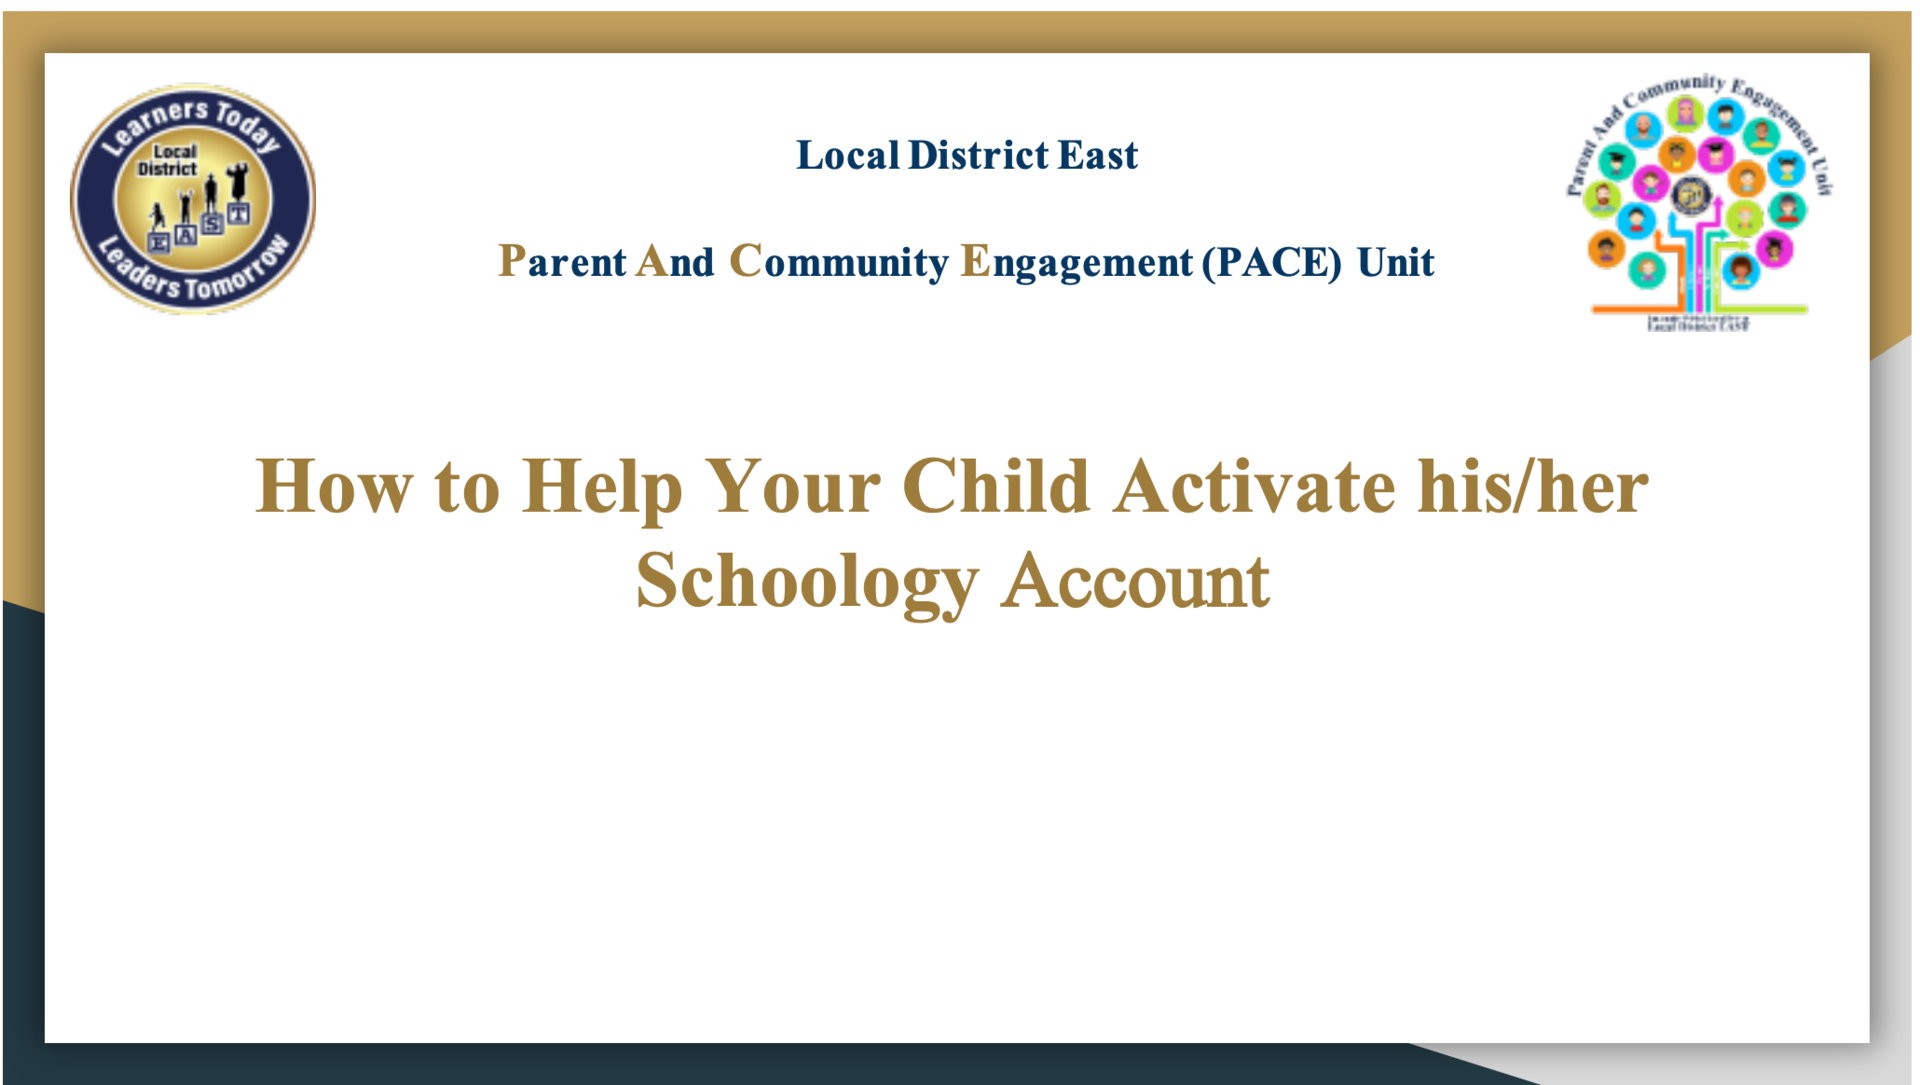 How to Help Your Child Activate his/her Schoology Account